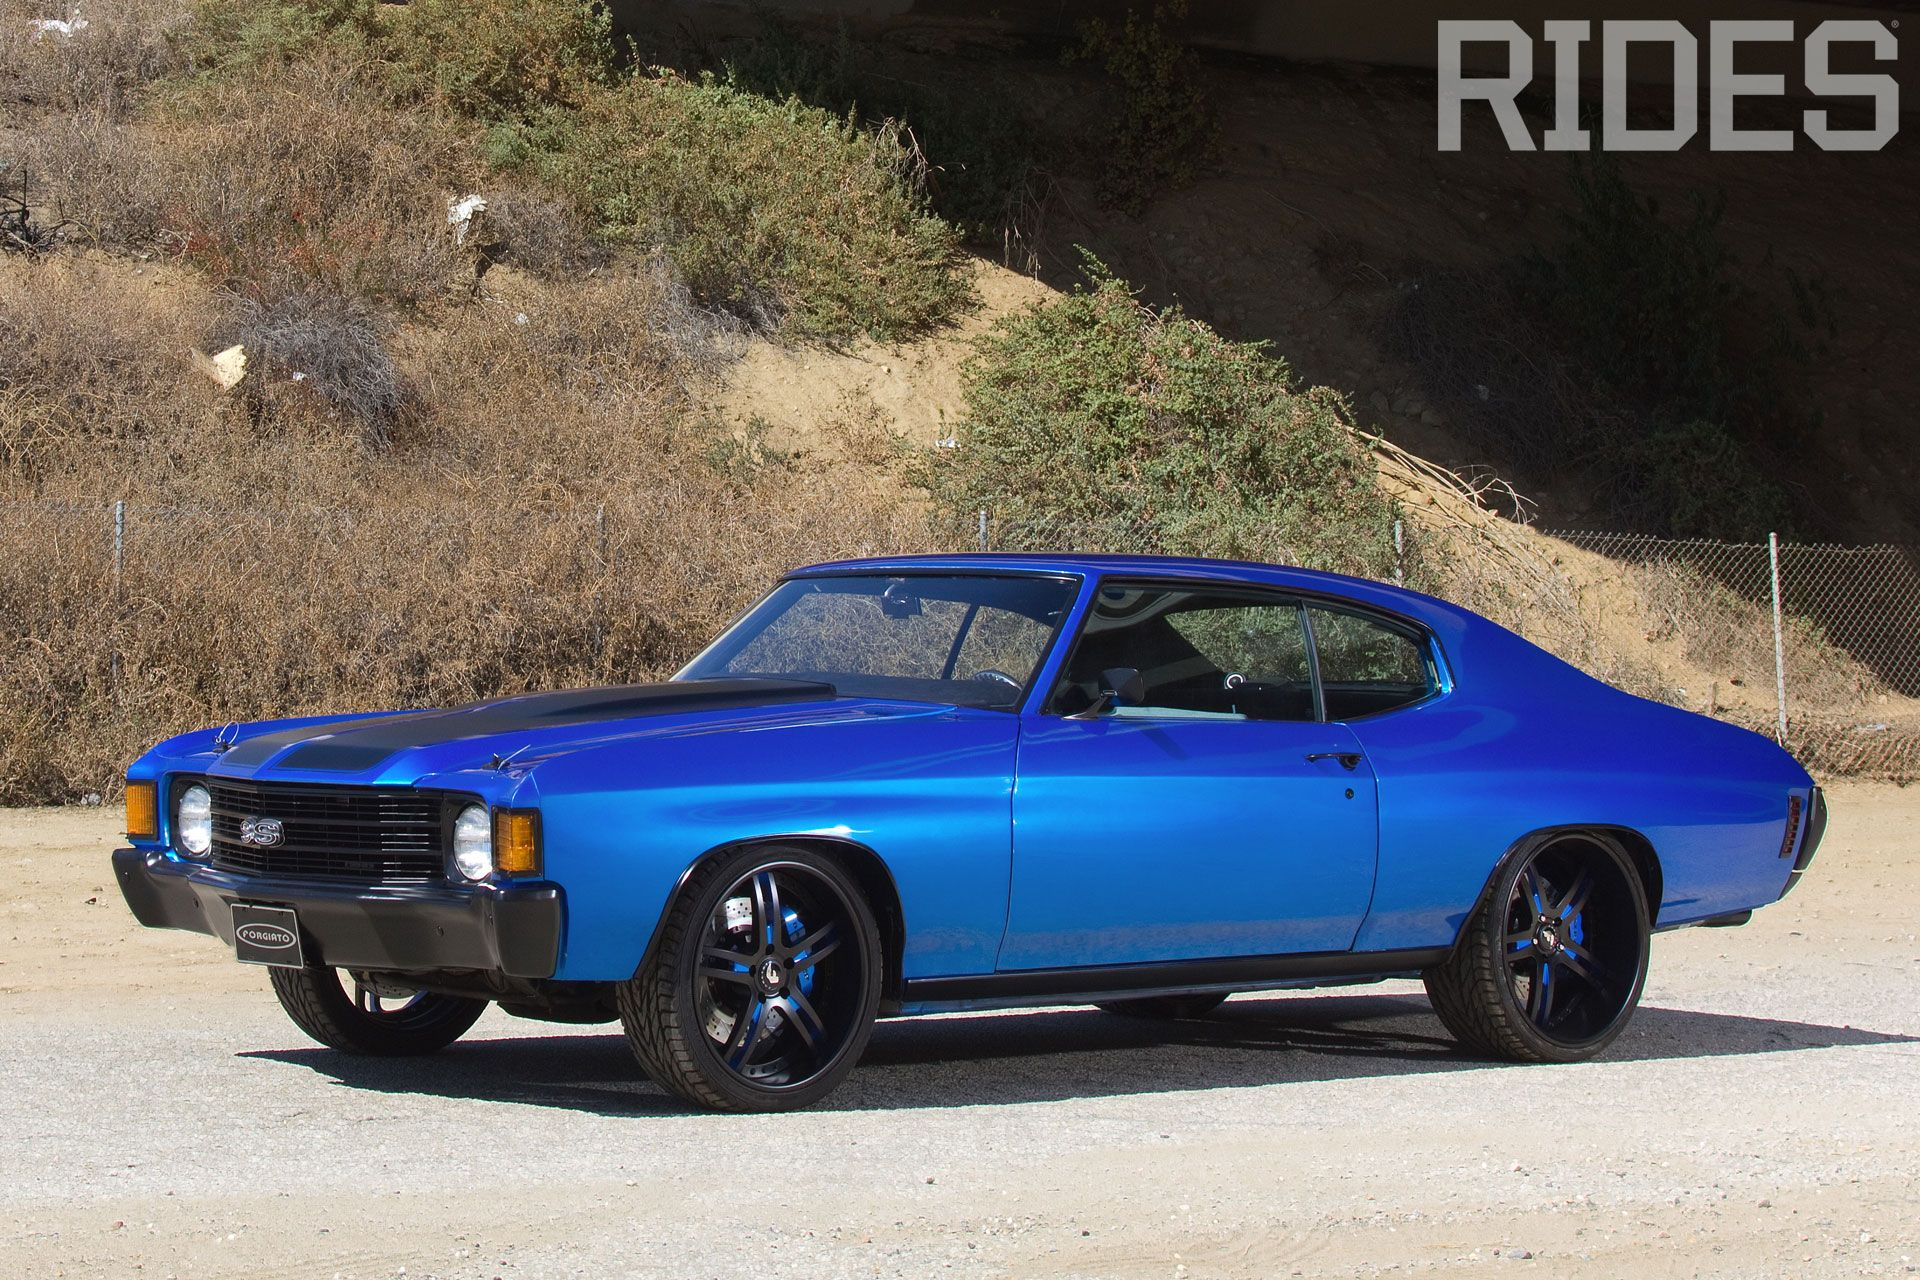 1972 Chevy Chevelle Maintenance/restoration of old/vintage vehicles ...